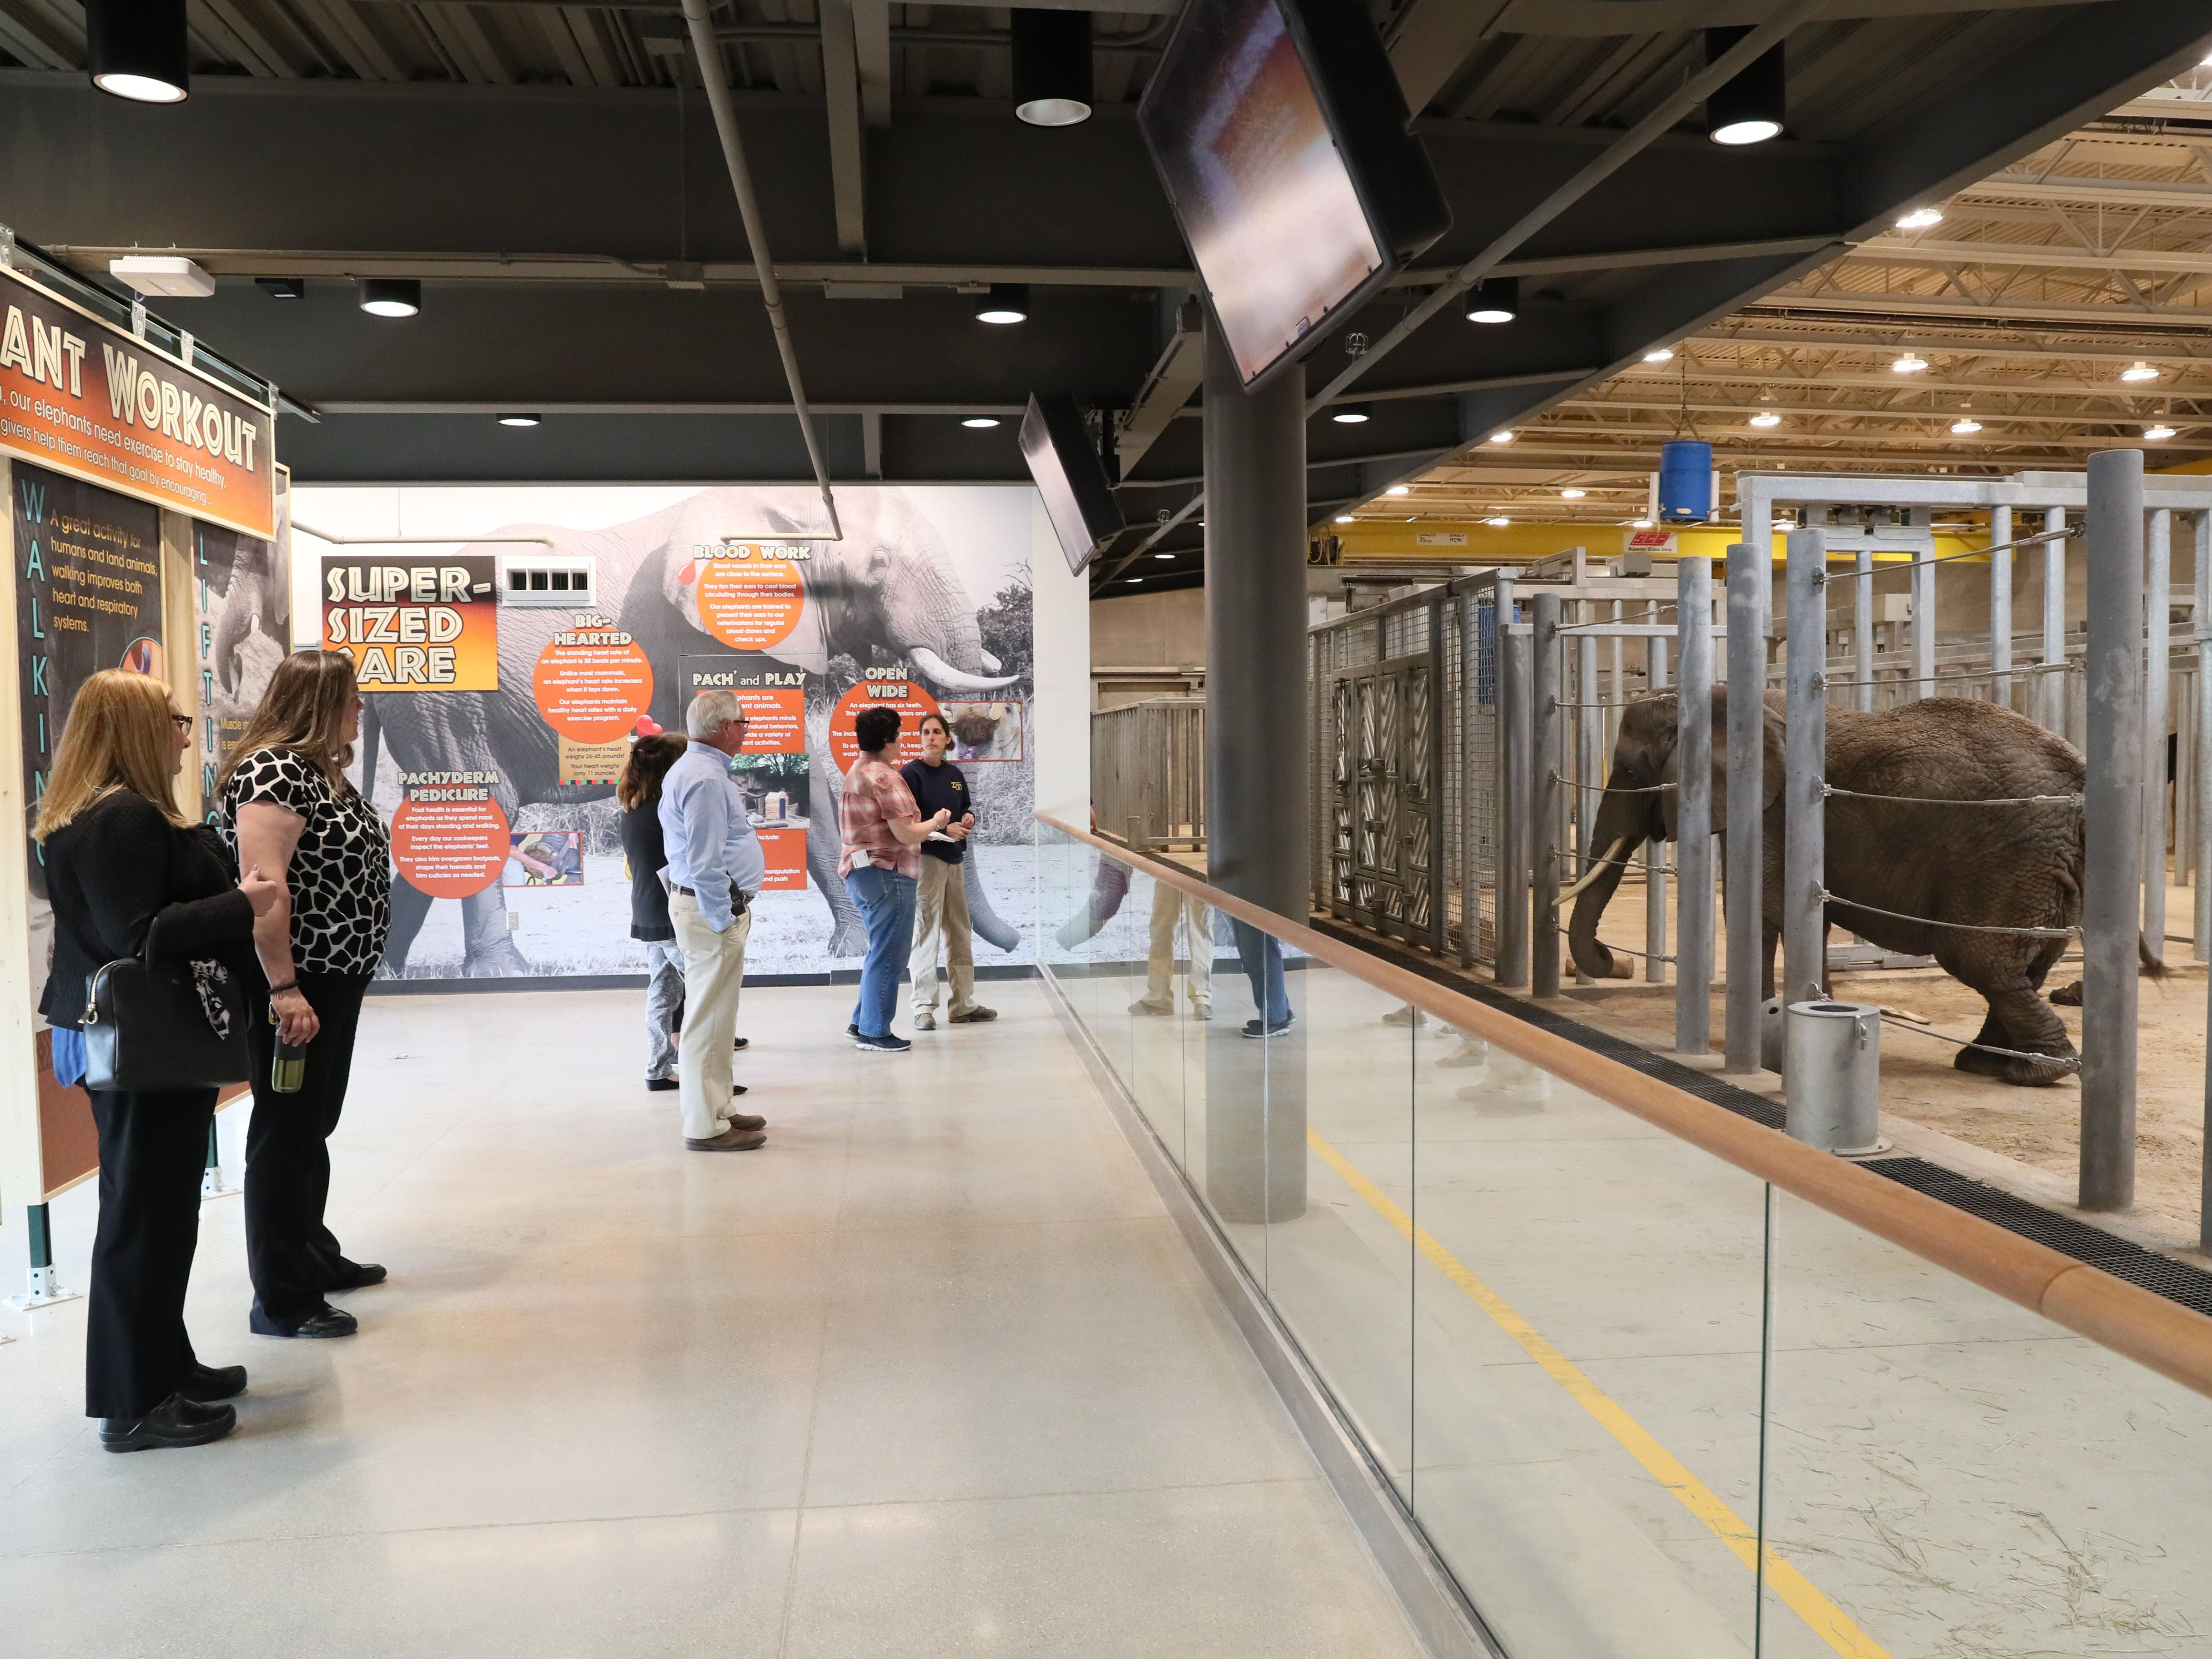 In the elephant care center, visitors can watch the elephants being cared for and doing their workouts with the zoo staff.